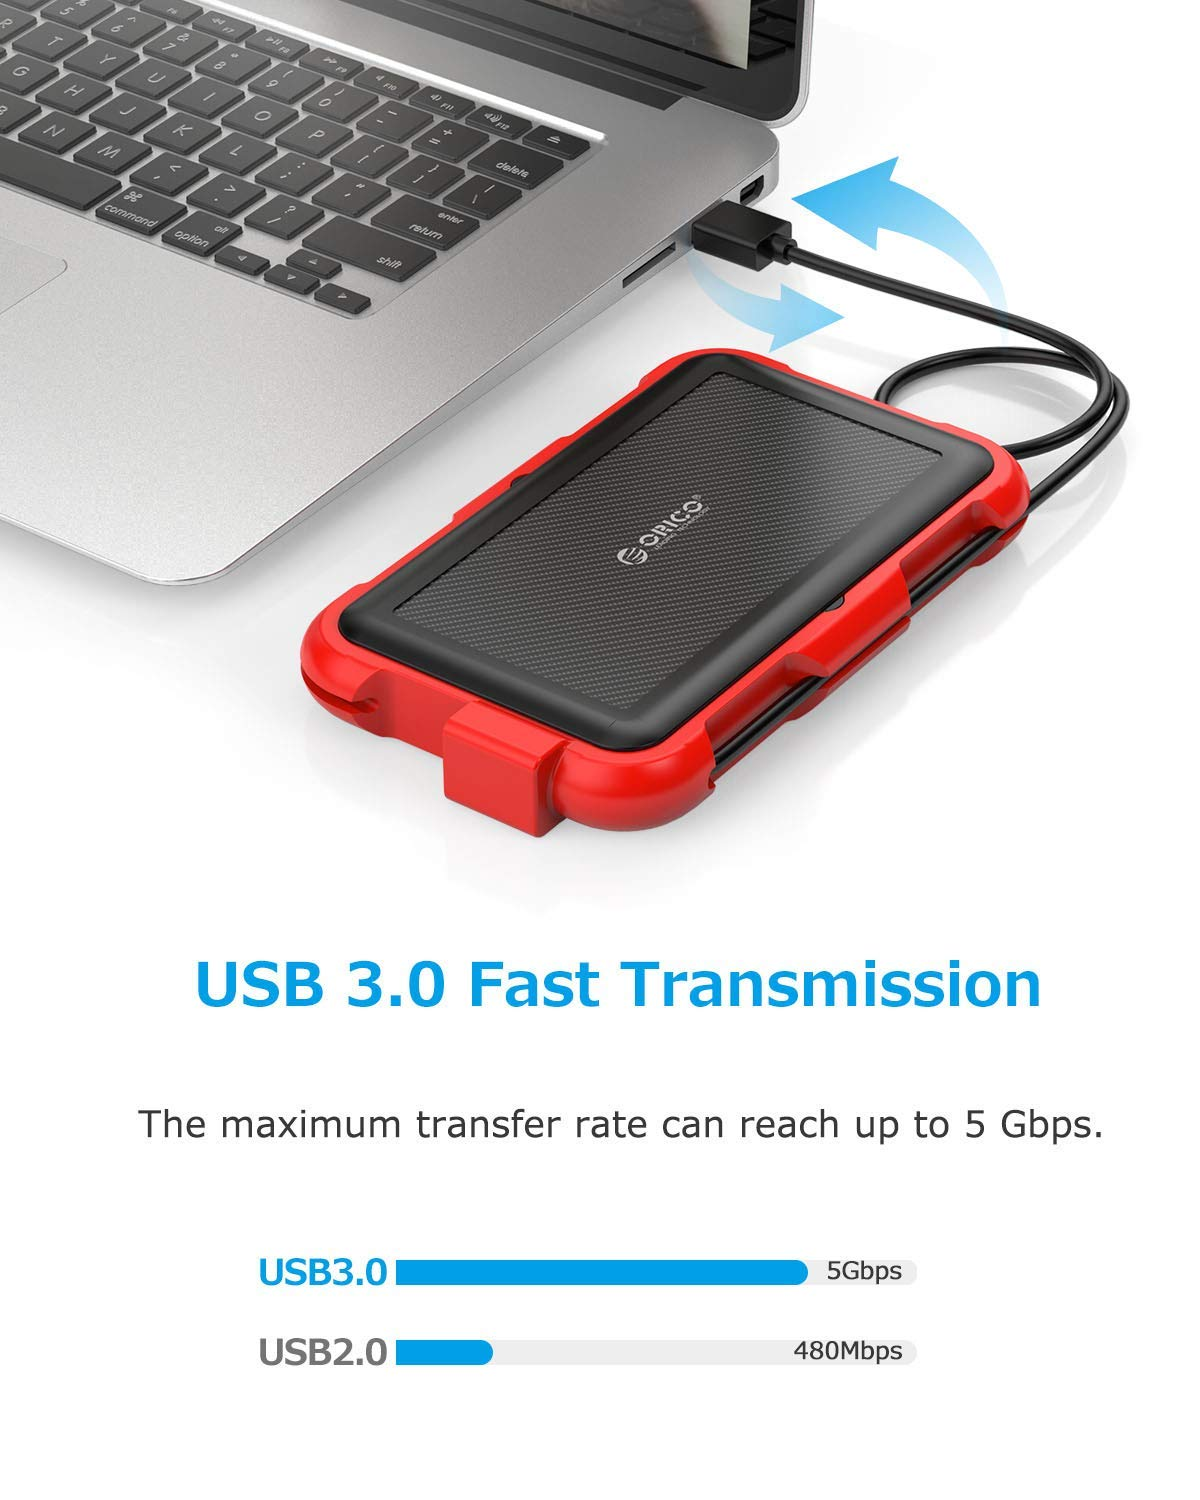 ORICO 2.5 inch USB3.0 Type A External Hard Drive Enclosure with Cable and Hook for 9.5//7mm SATA I II III HDD SSD Shockproof Waterproof Storage Box Casing Max 4TB